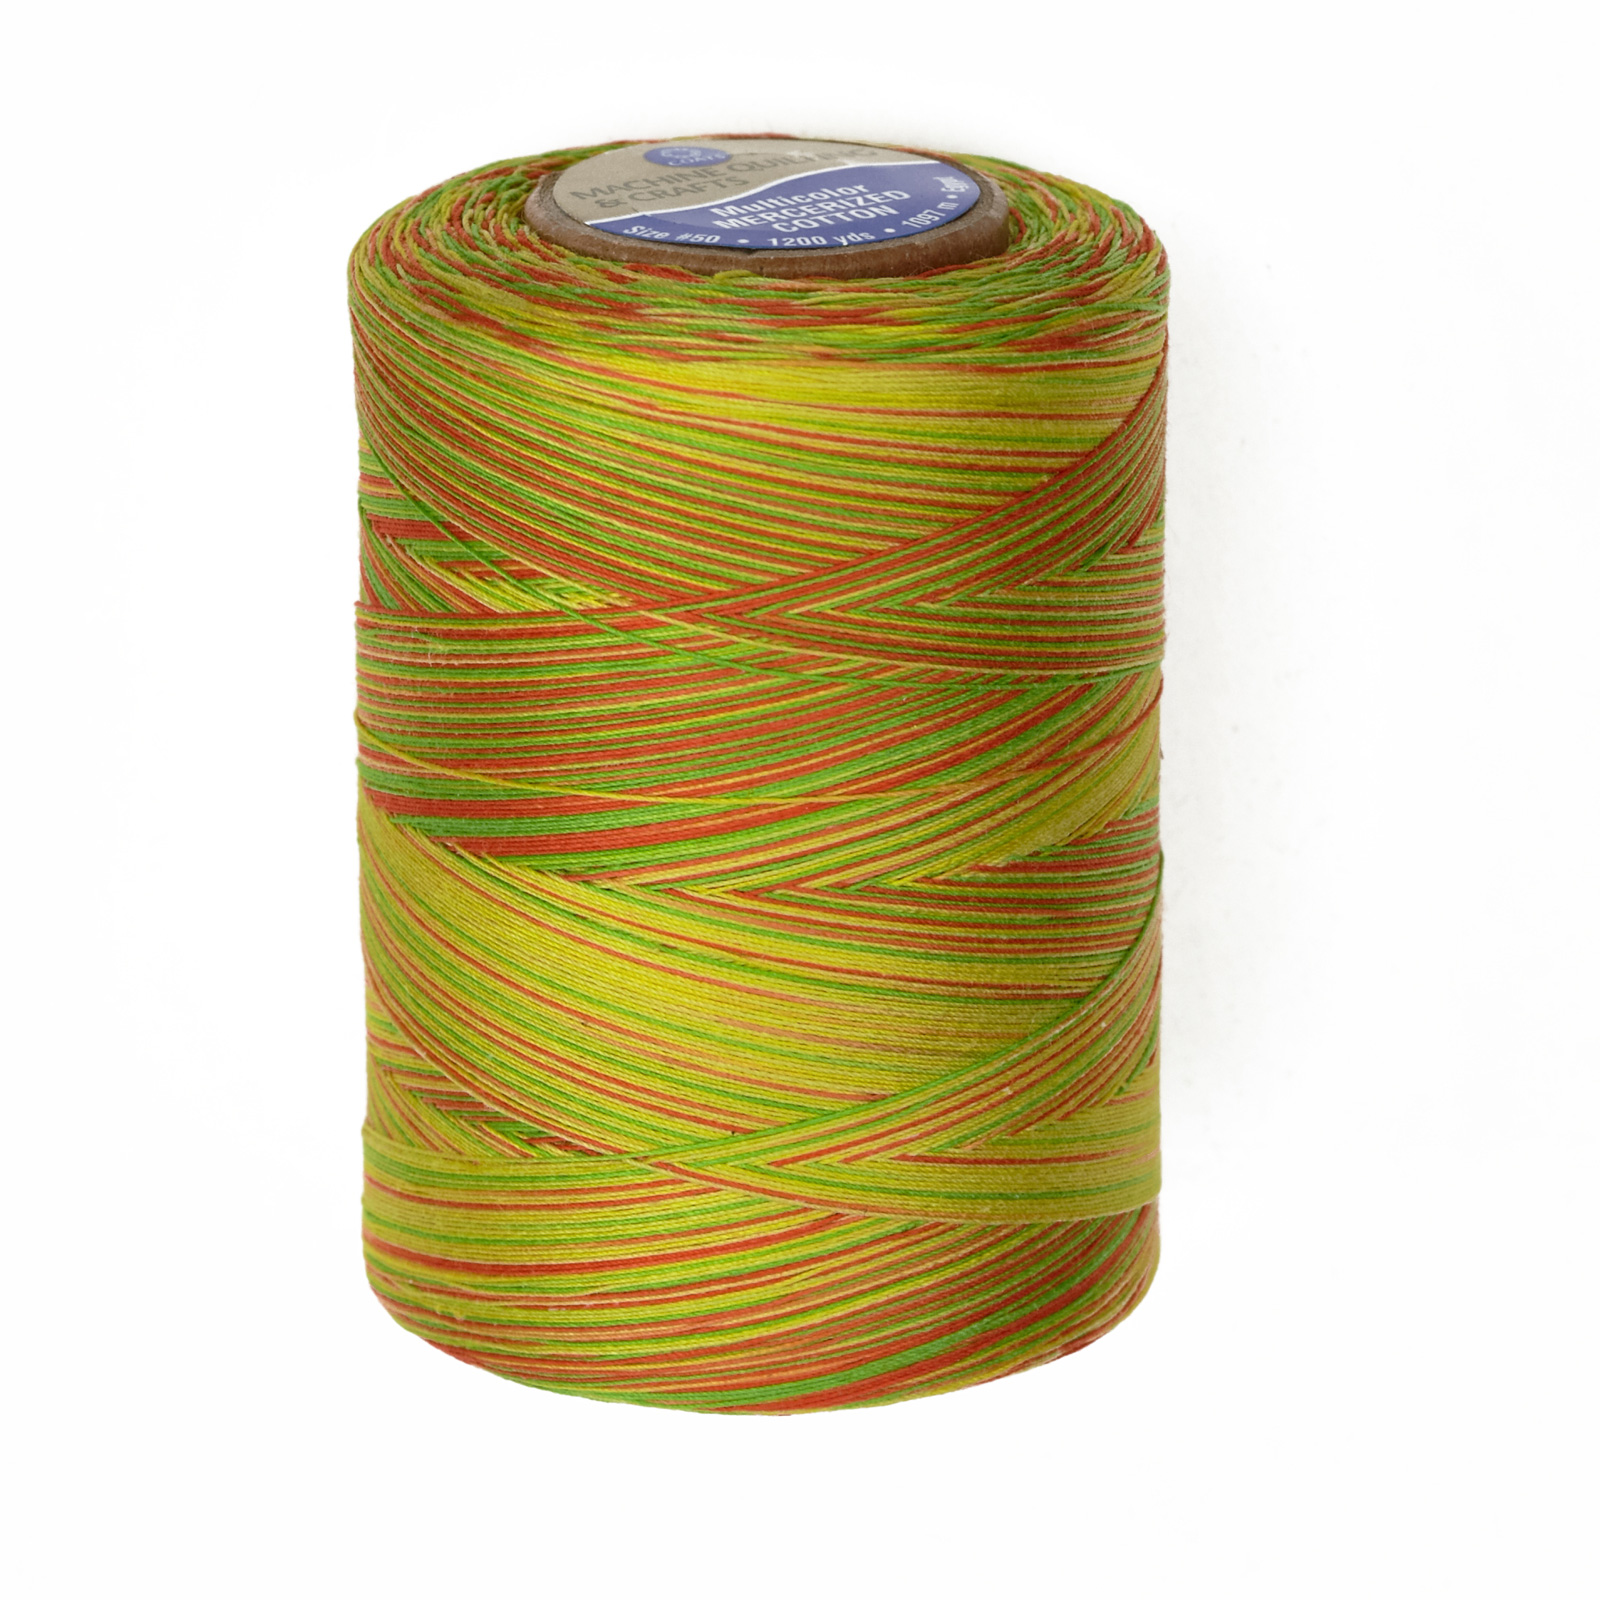 Coats & Clark Star Mercerized Cotton Quilting Multicolor Thread 1200 Yds Citrus by Coats & Clark in USA